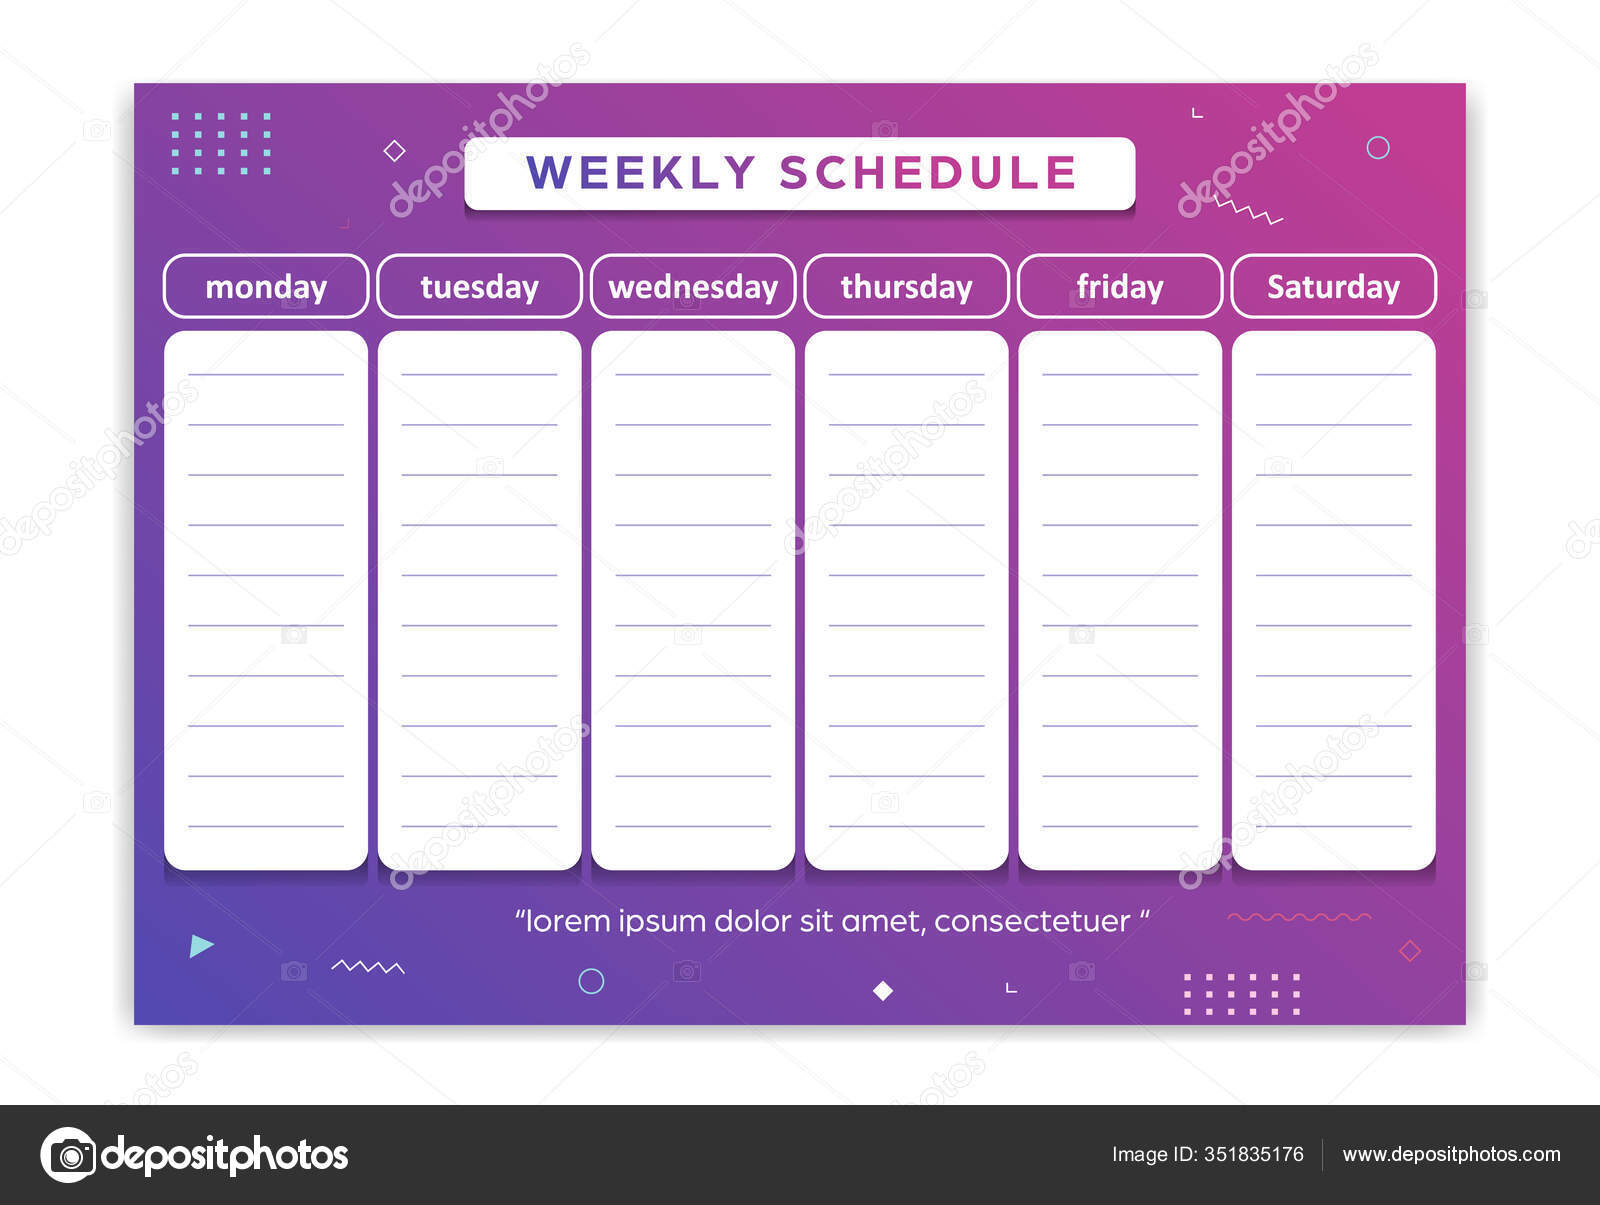 Weekly Schedules Stock Vectors, Royalty Free Weekly within Depo Schedule For 2020